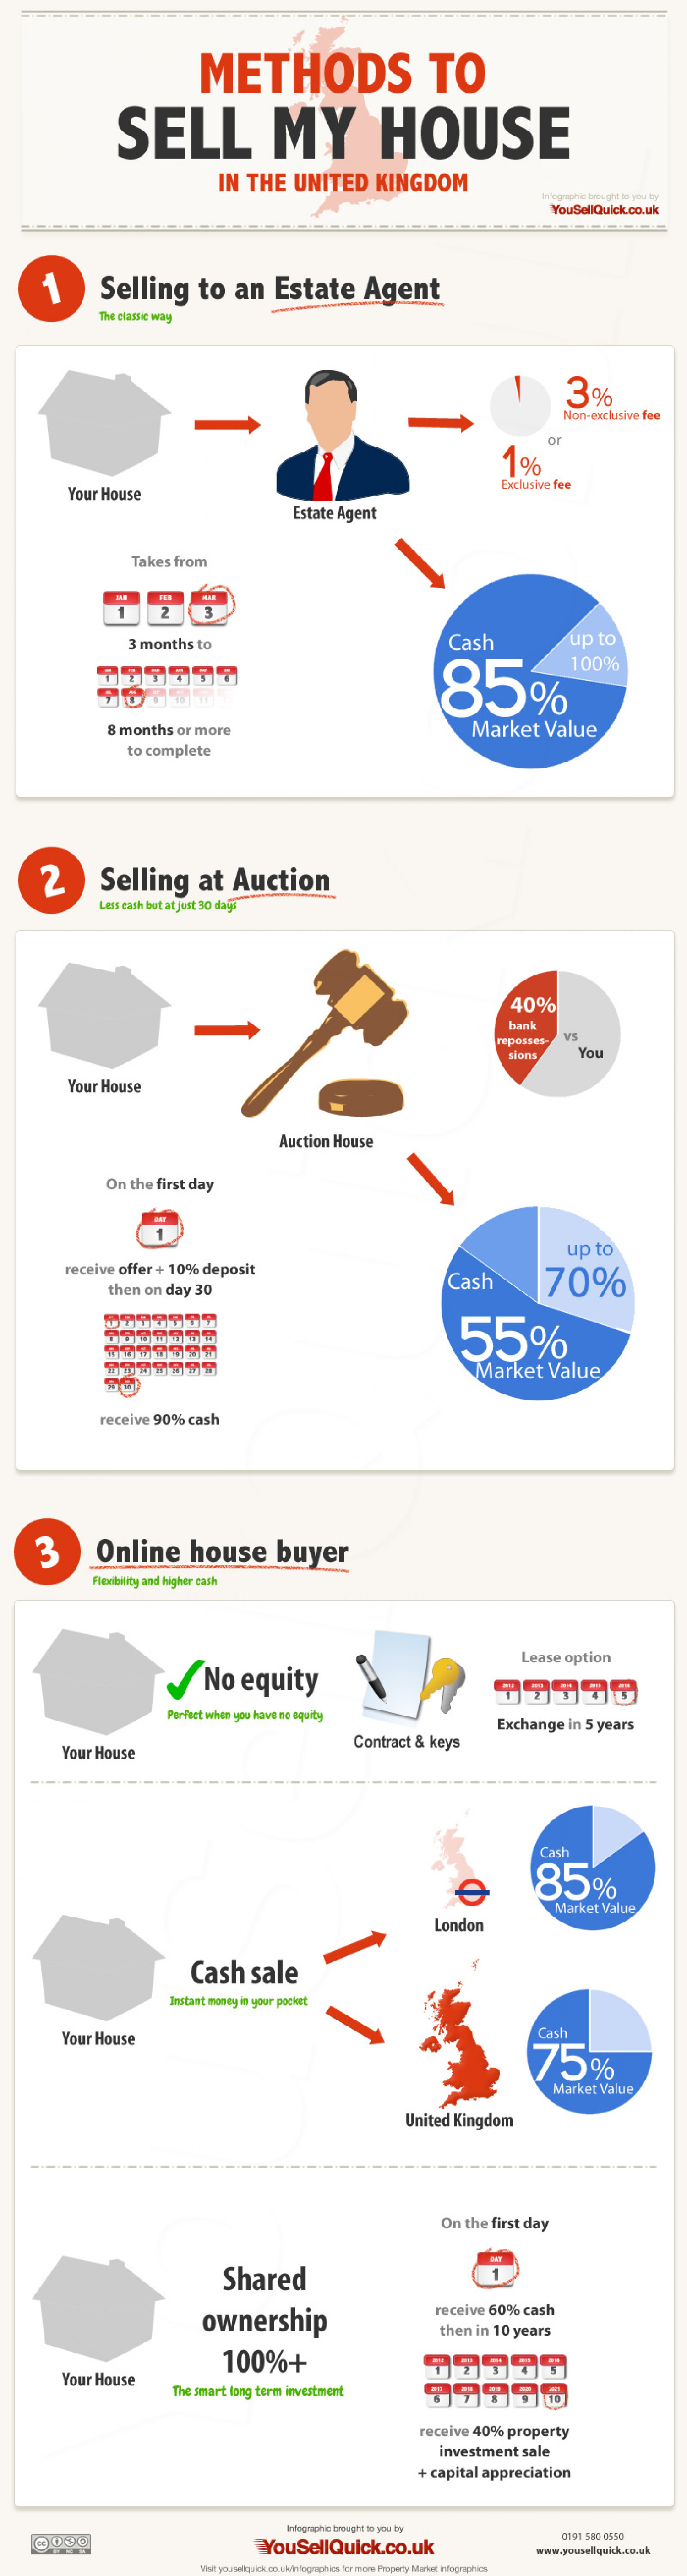 Methods to Sell My House in the United Kingdom Infographic